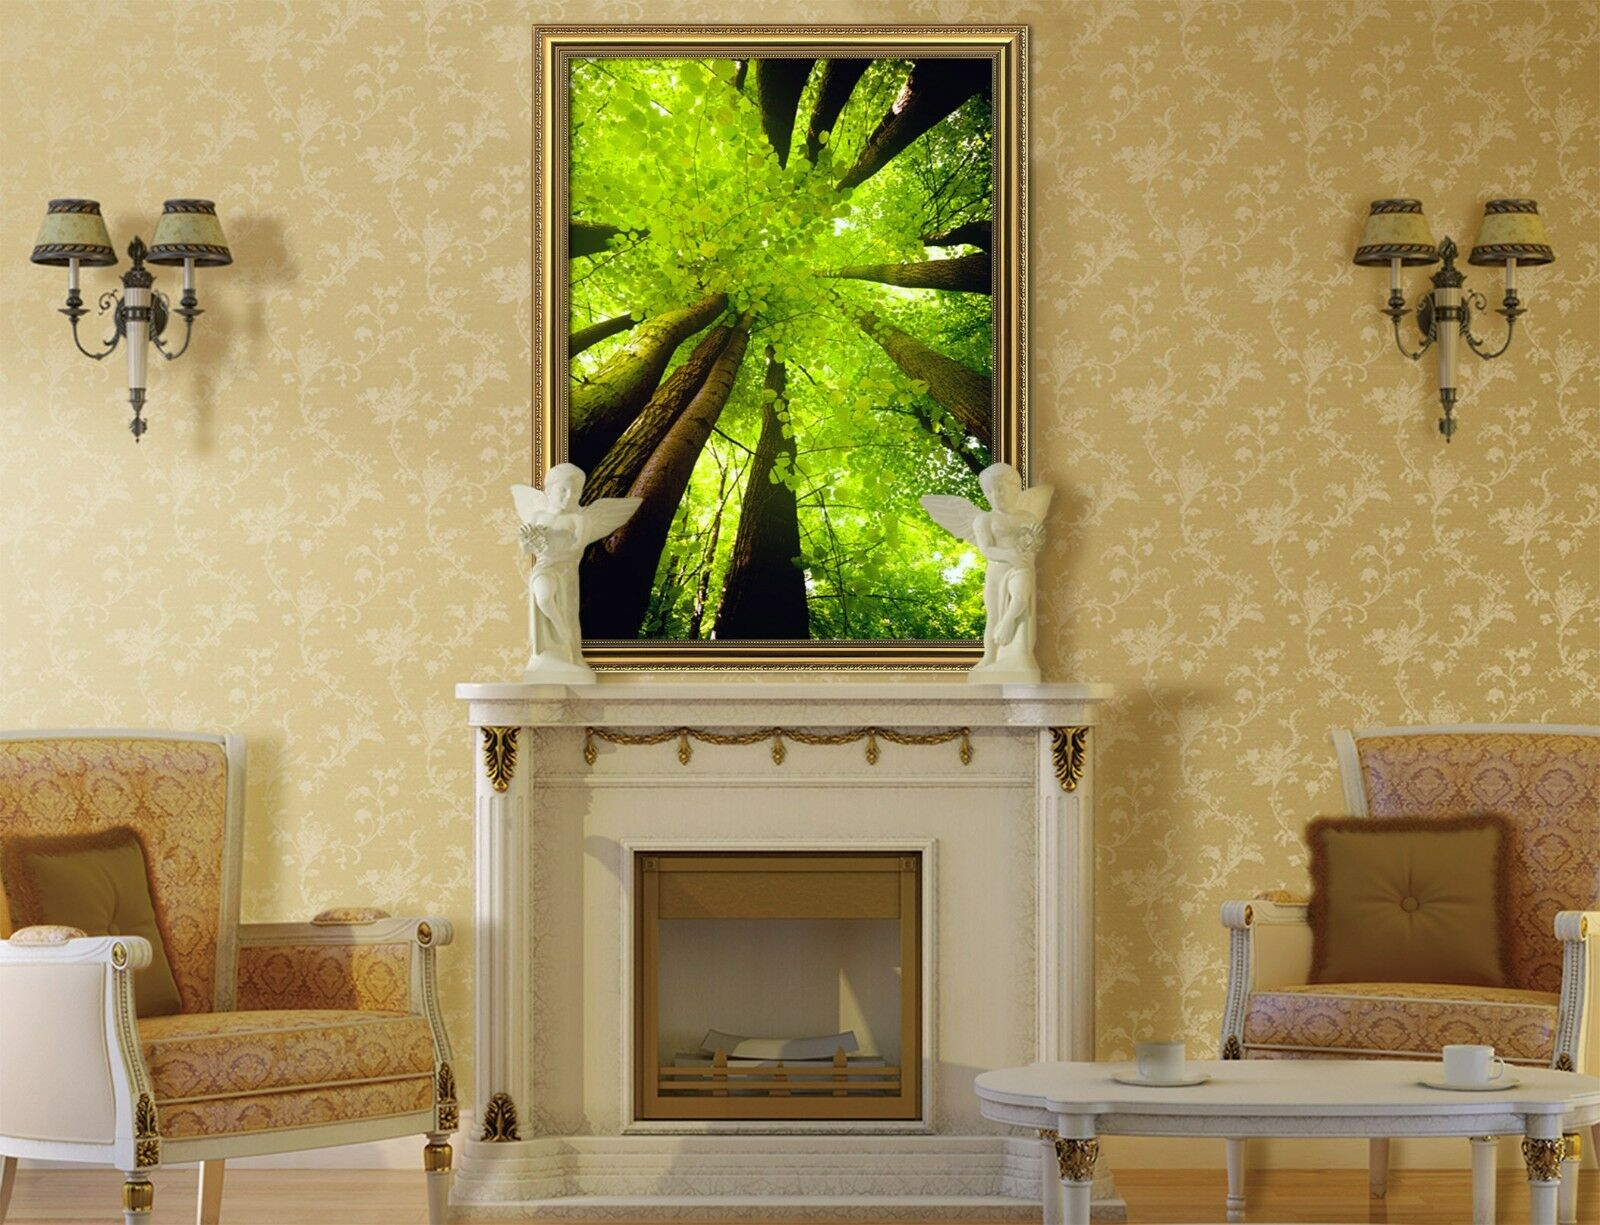 3D Forest View 557 Fake Framed Poster Home Decor Print Painting Unique Art